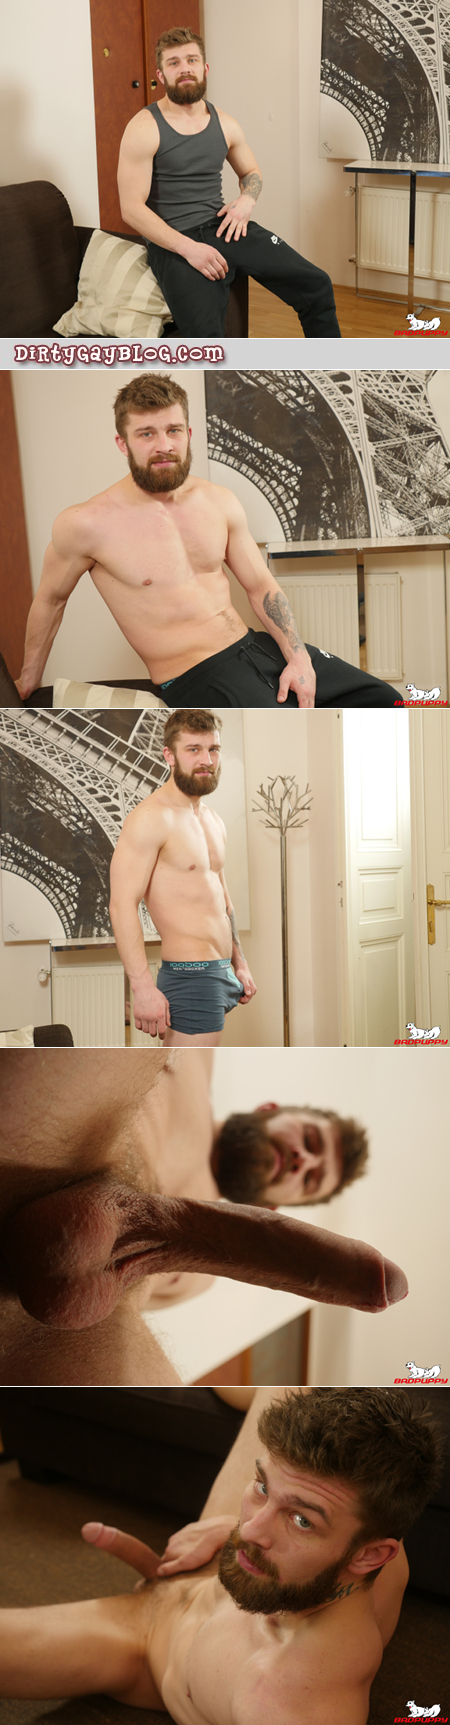 Bearded Czech hunk stripping and stroking his large uncut cock.